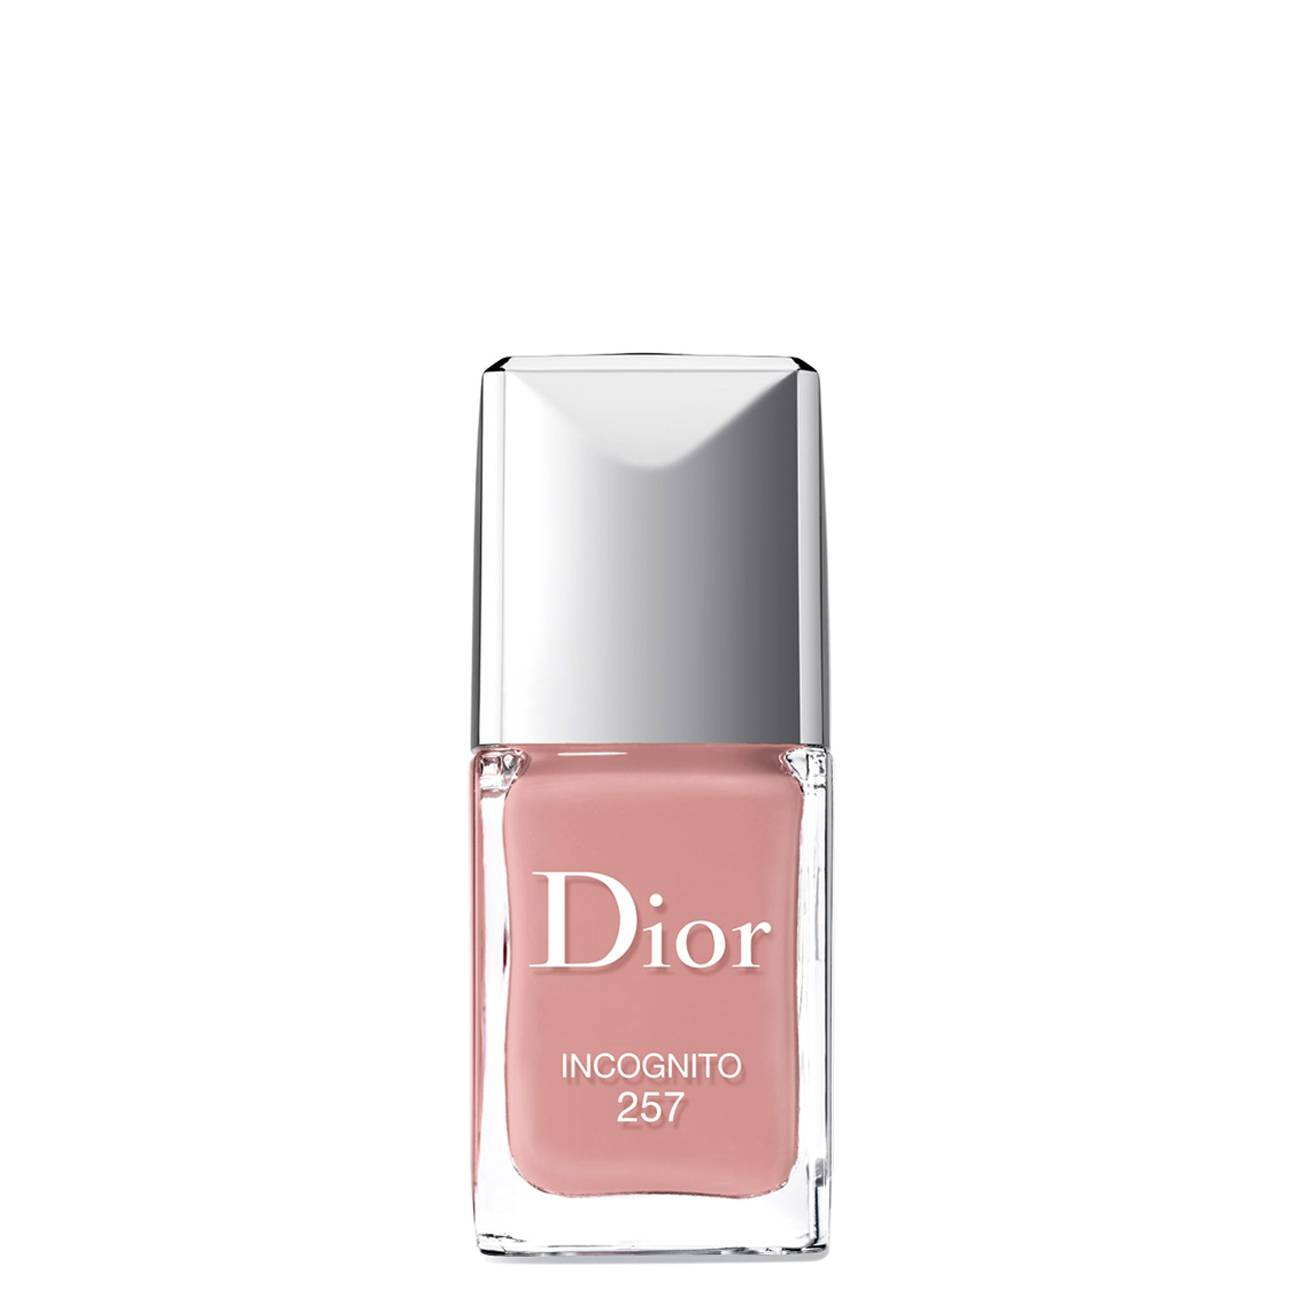 Vernis 257 10 Ml Dior imagine 2021 bestvalue.eu